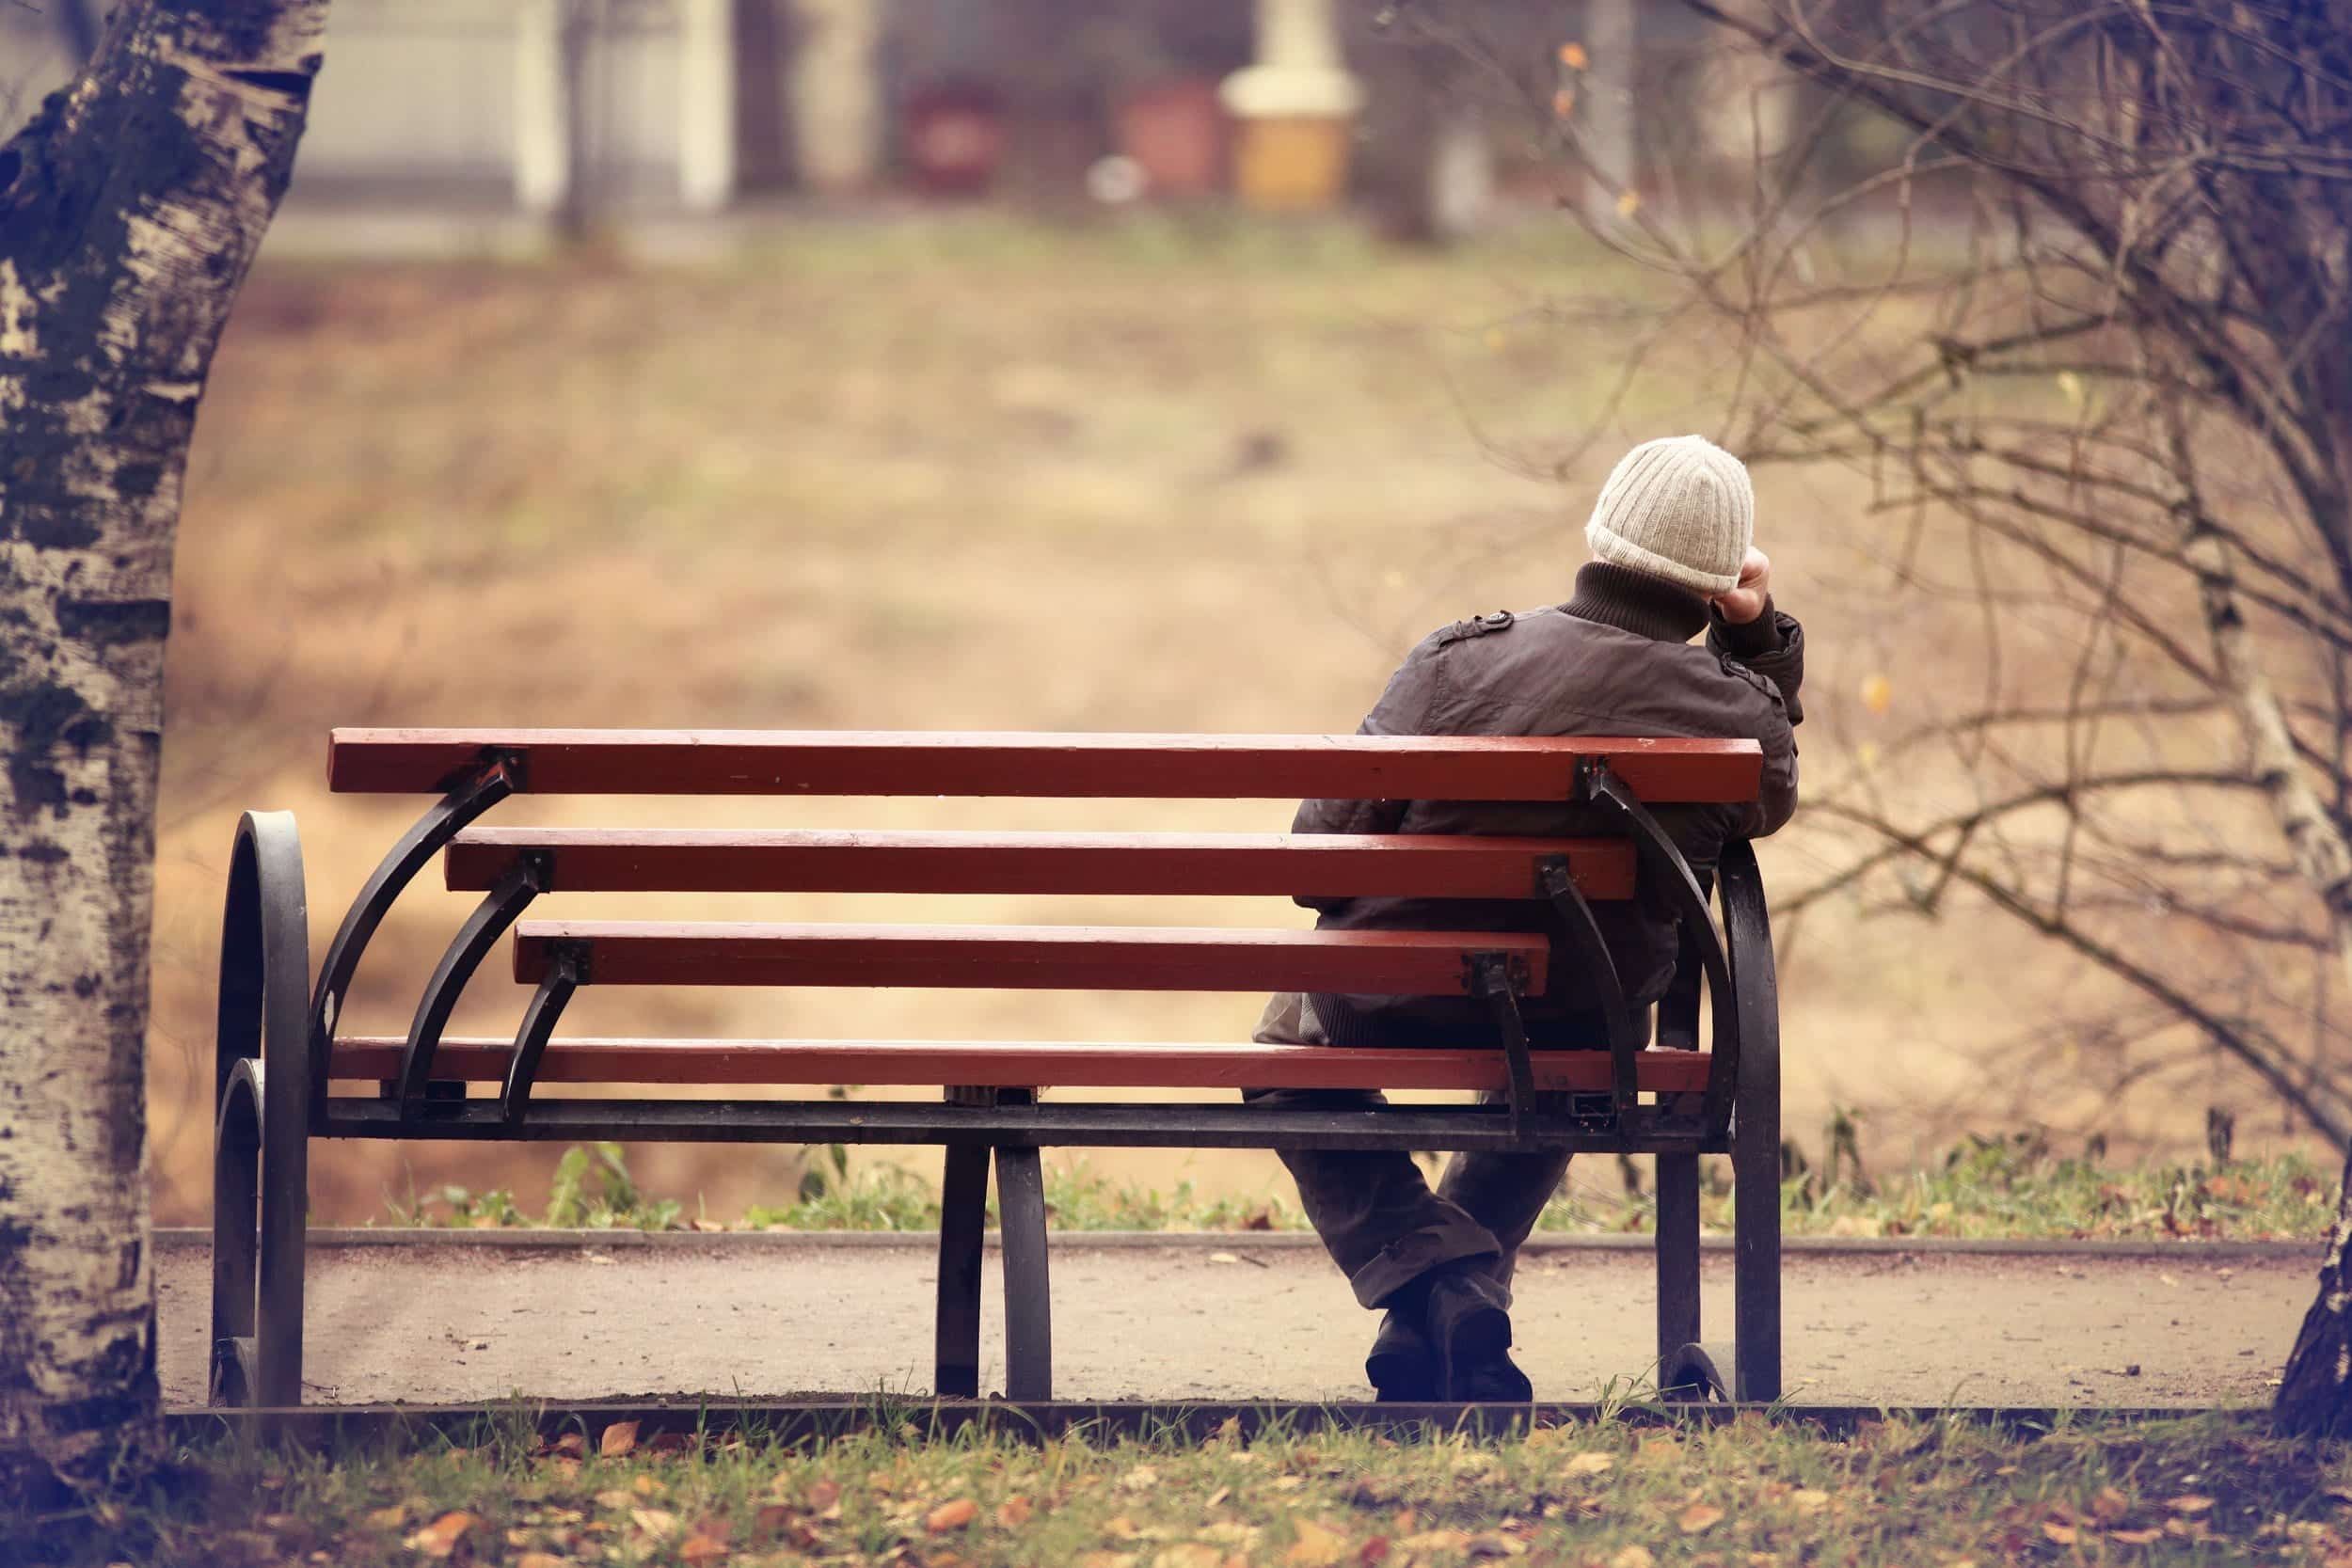 mid thirties single man lonely sitting on bench coping